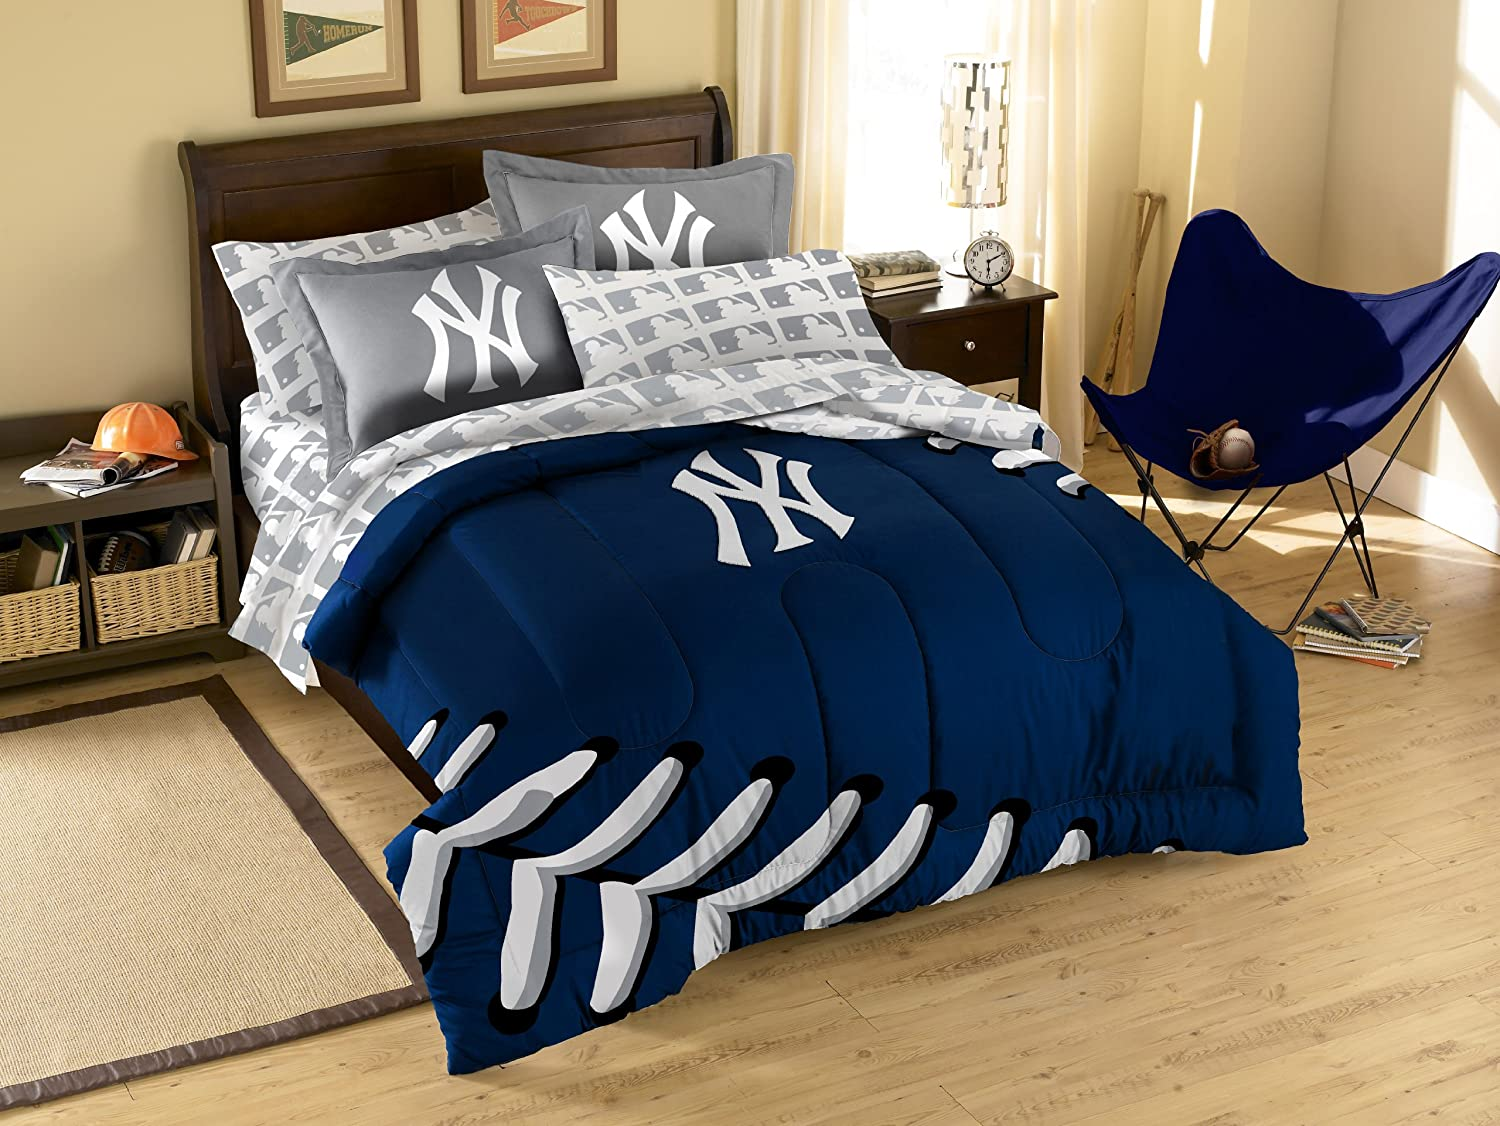 Comforter, 1 Flat Sheet, 1 Fitted Sheet, 2 Pillow Cases, 2 Shams New York Yankees 7 Pc FULL Size Bed in a Bag SAVE BIG ON BUNDLING!